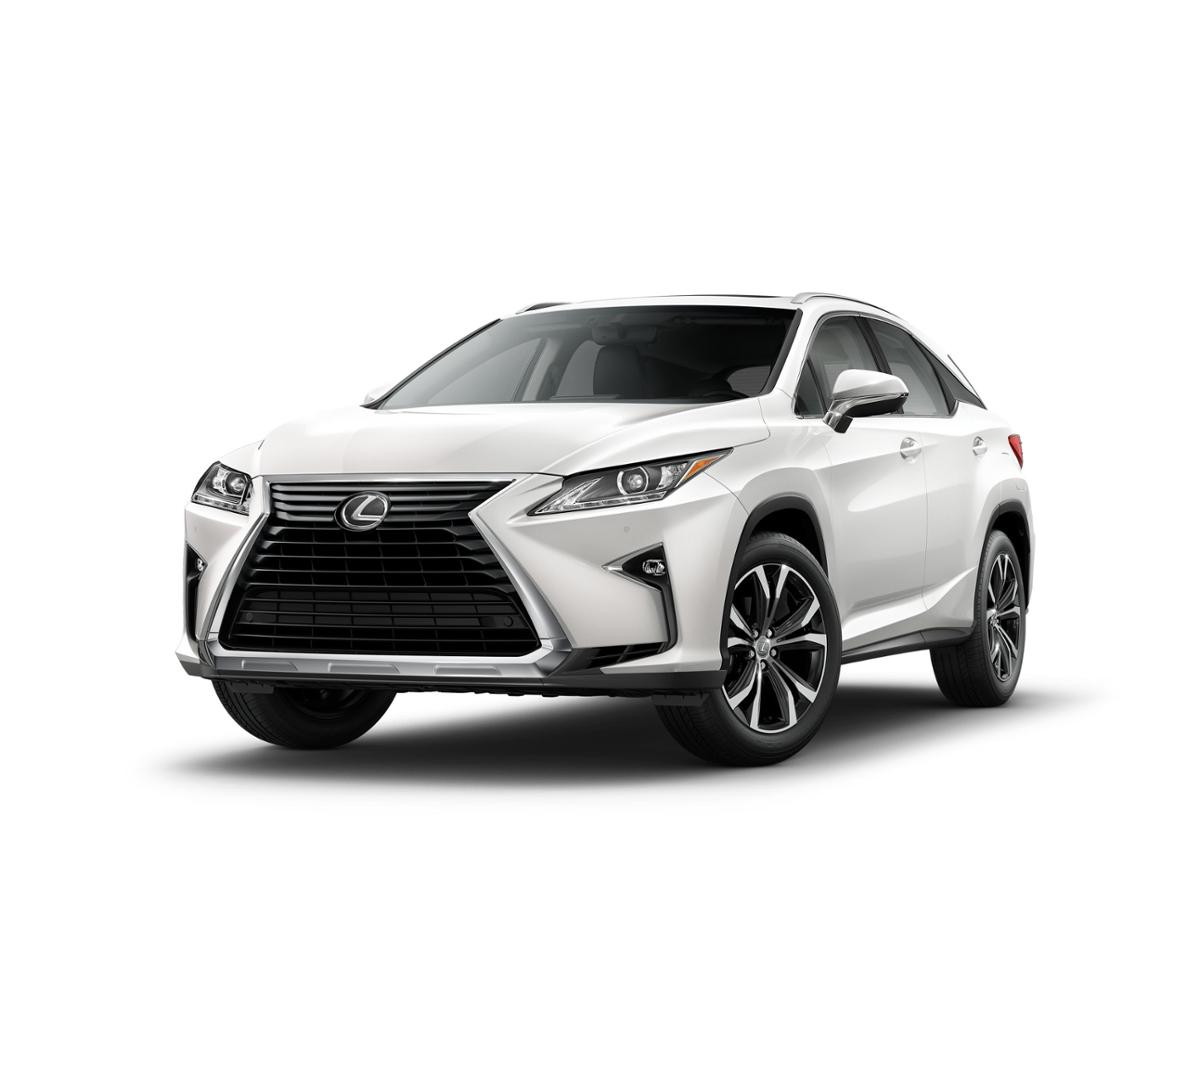 2018 Lexus RX 350 Vehicle Photo in Bedford, NH 03110